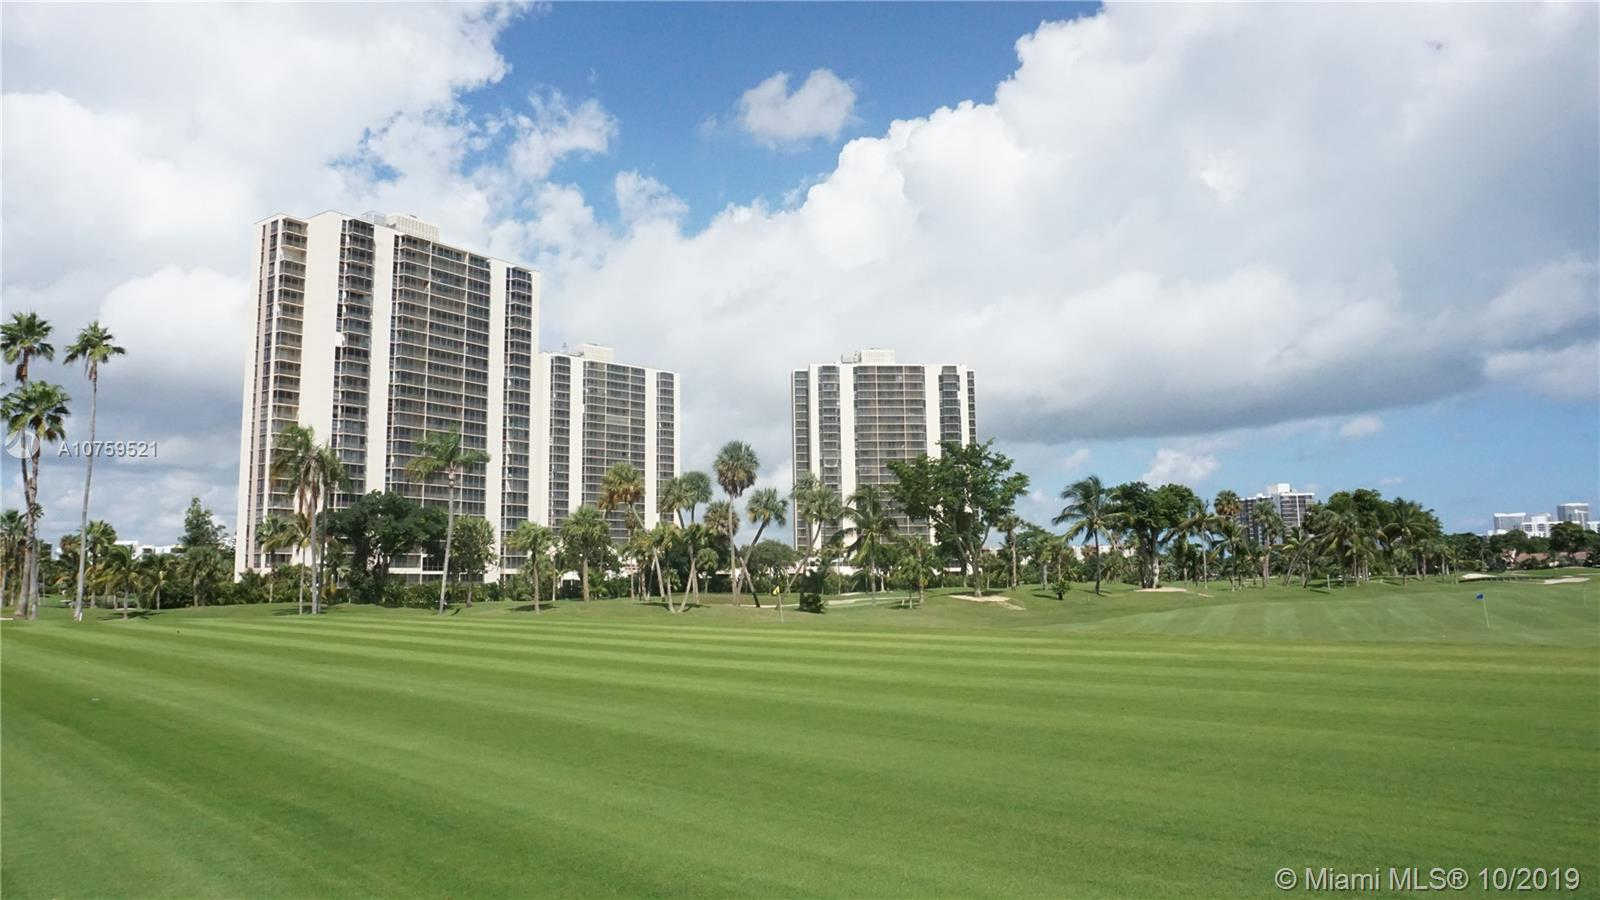 20335 W Country Club Dr #1006, Aventura, FL 33180 now has a new price of $220,000!